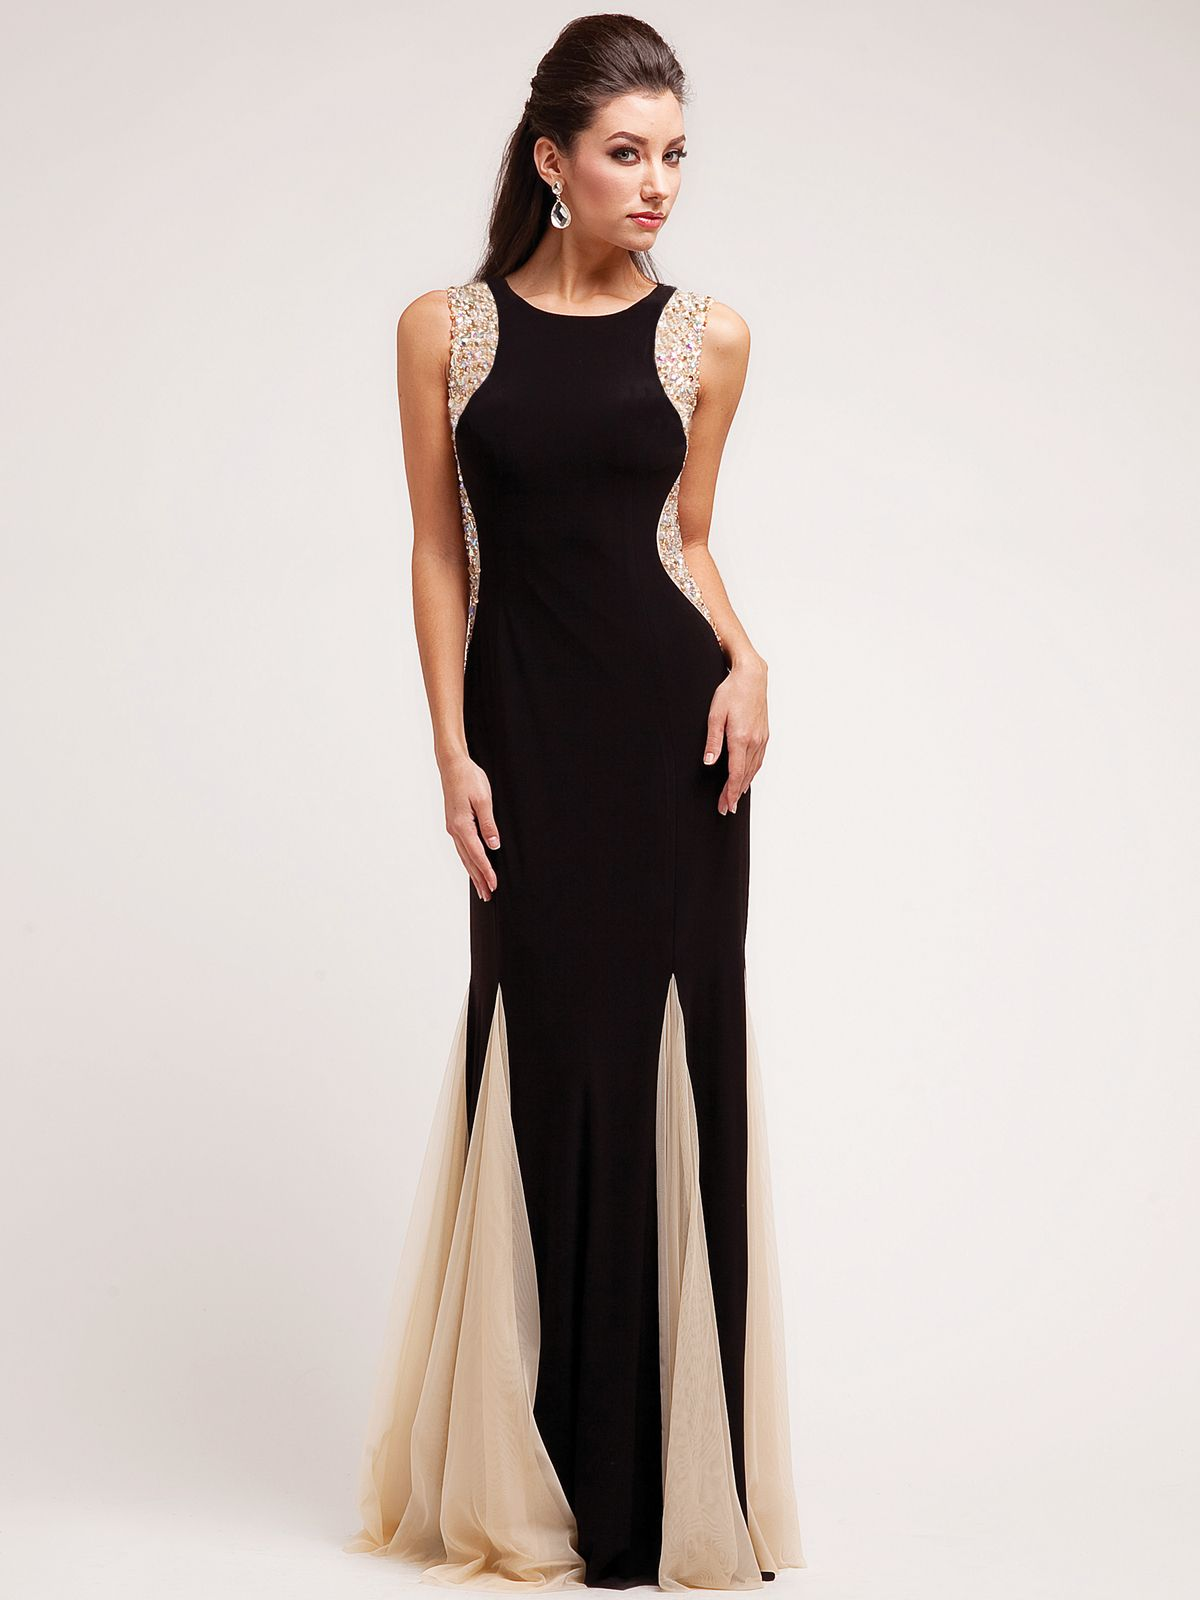 A Black Tie Affair Evening Dress  ef959513ea5